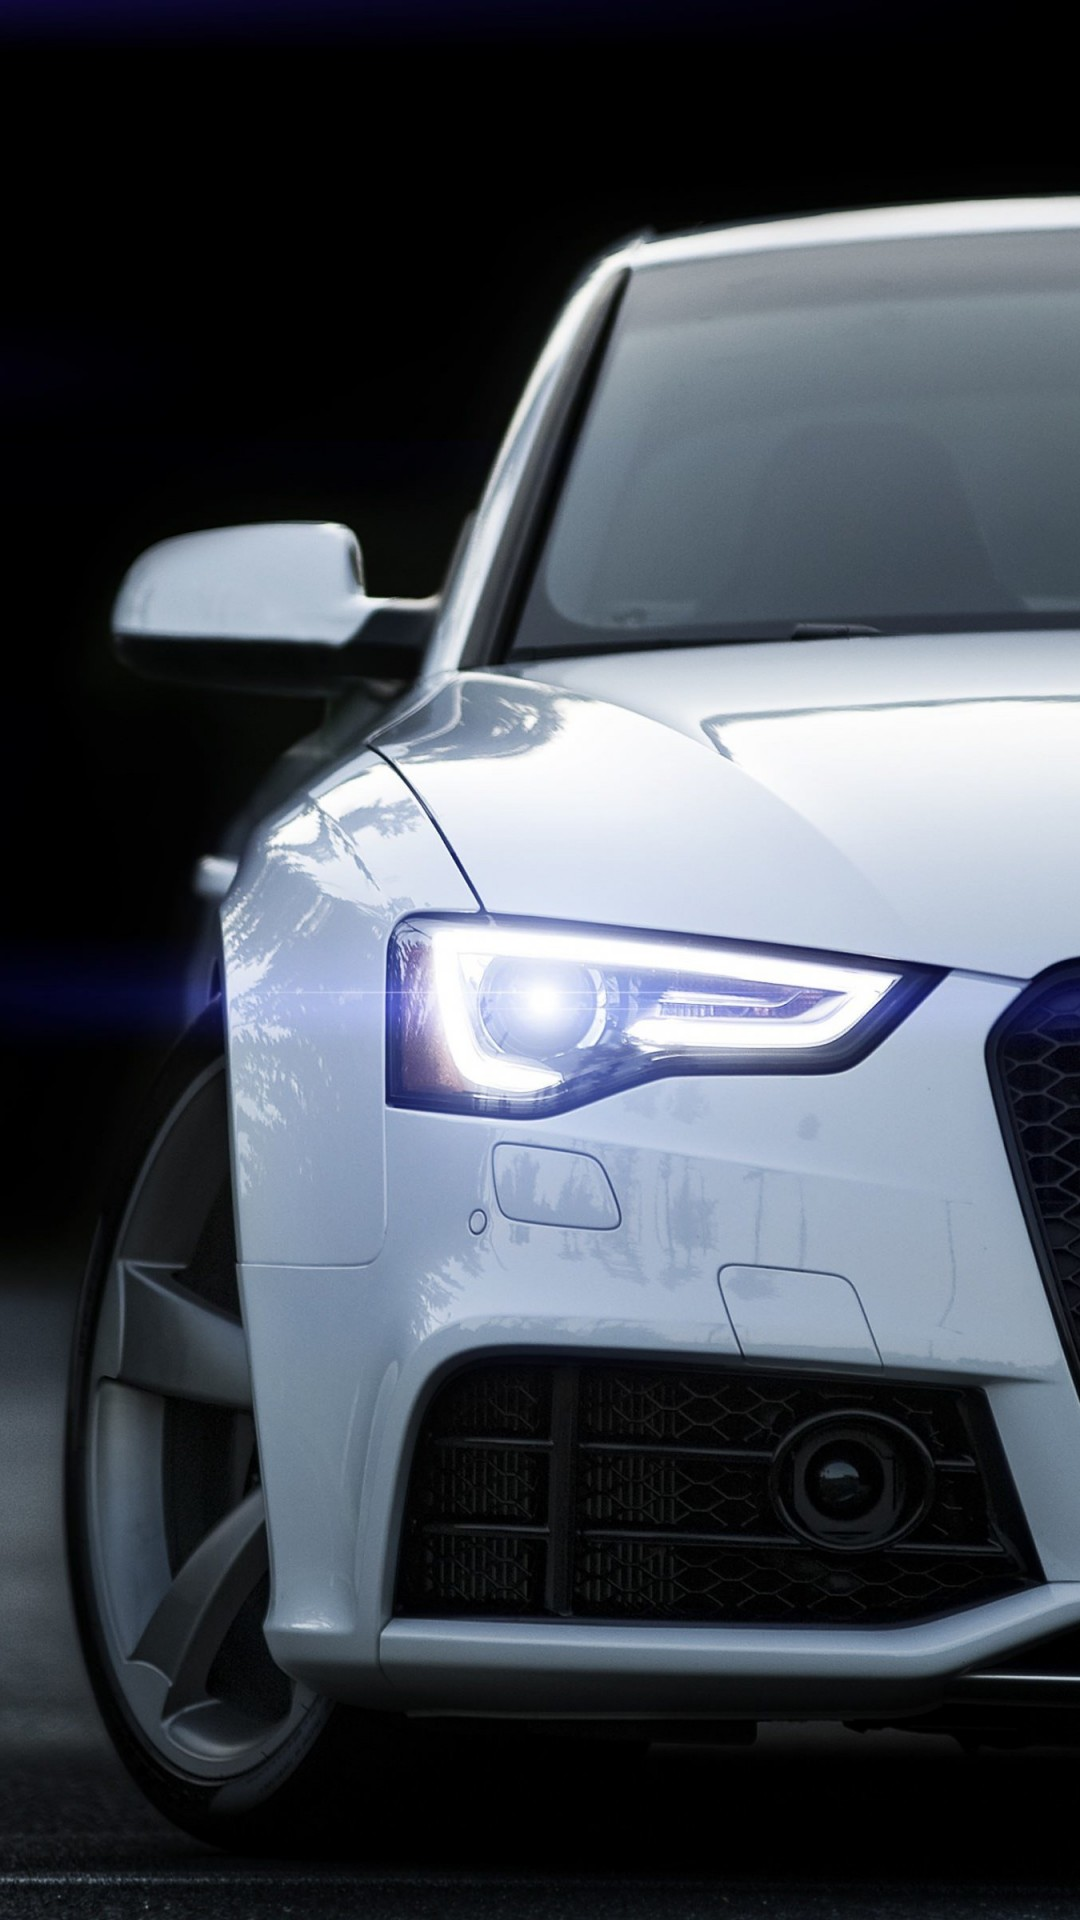 2015 Audi RS 5 Coupe Wallpaper for SONY Xperia Z3